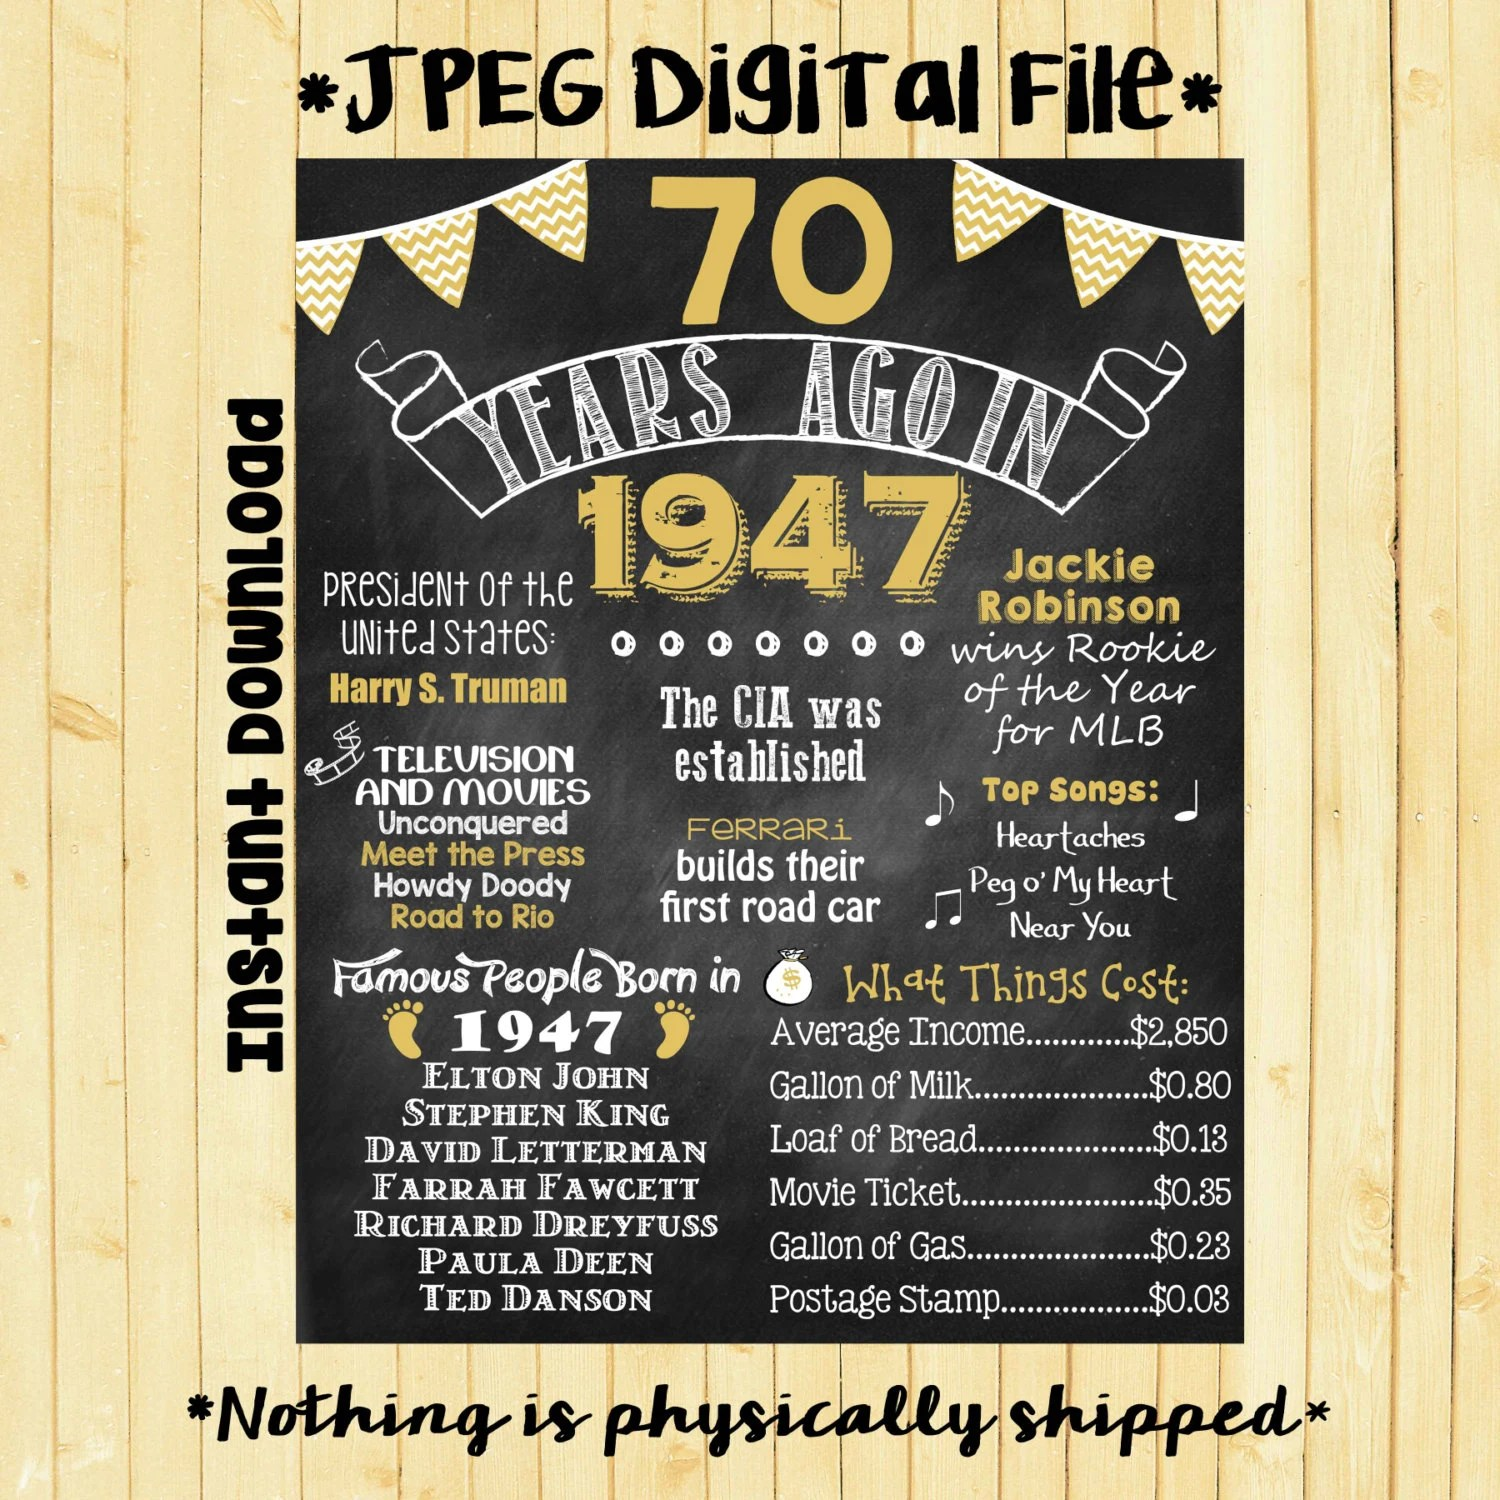 Gold 70th Birthday Chalkboard 1947 Poster 70 Years Ago In 1947